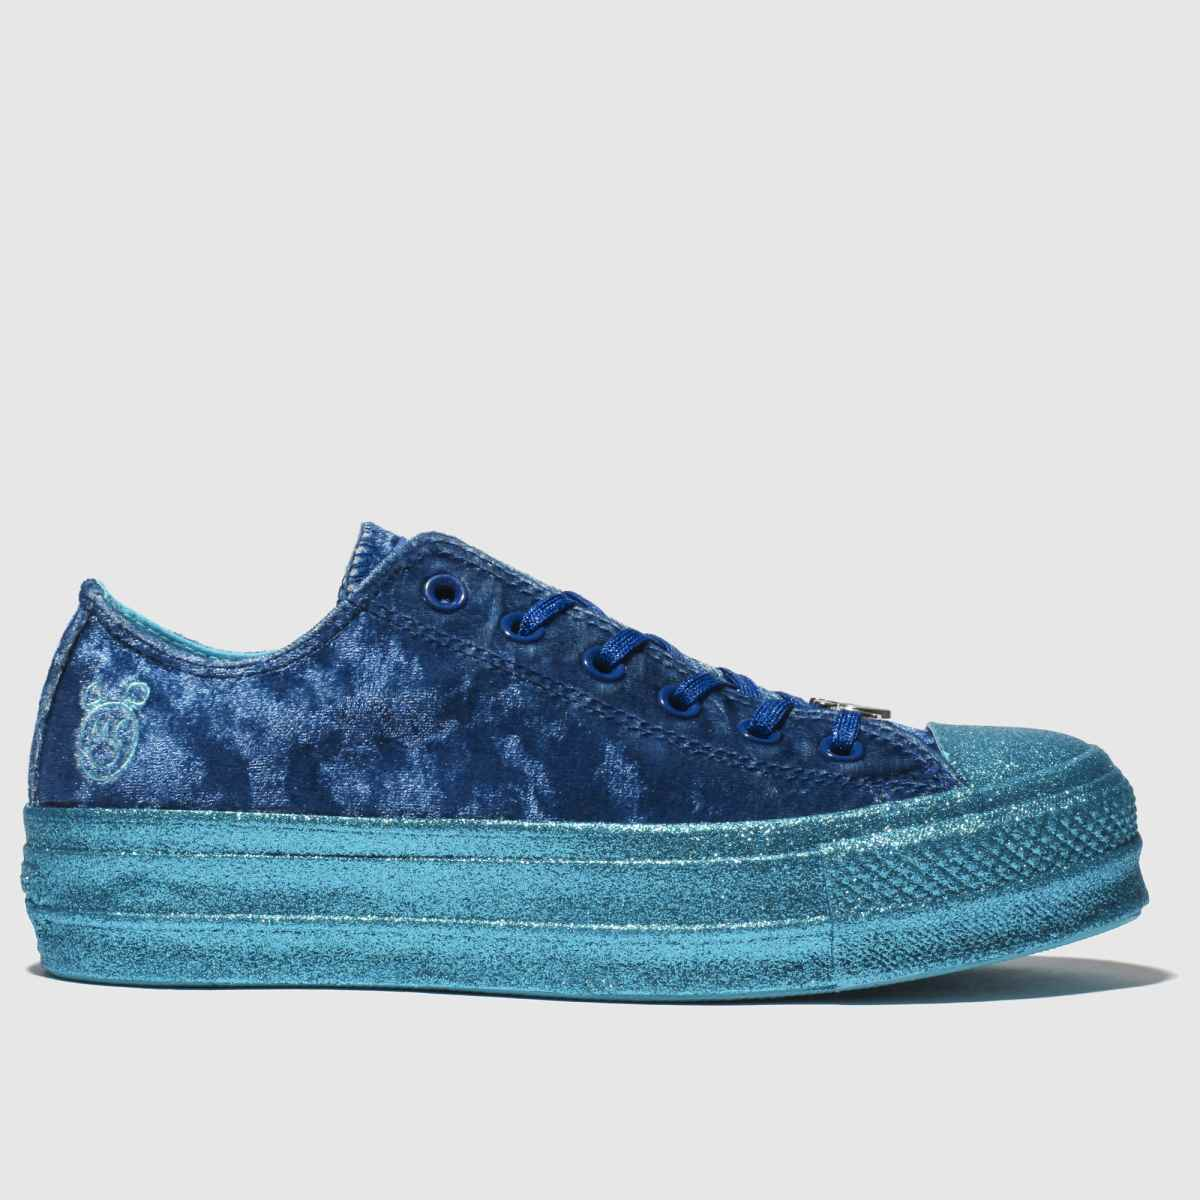 3a75449dcf0d Converse Navy All Star Lift Ox X Miley Cyrus Trainers. Schuh